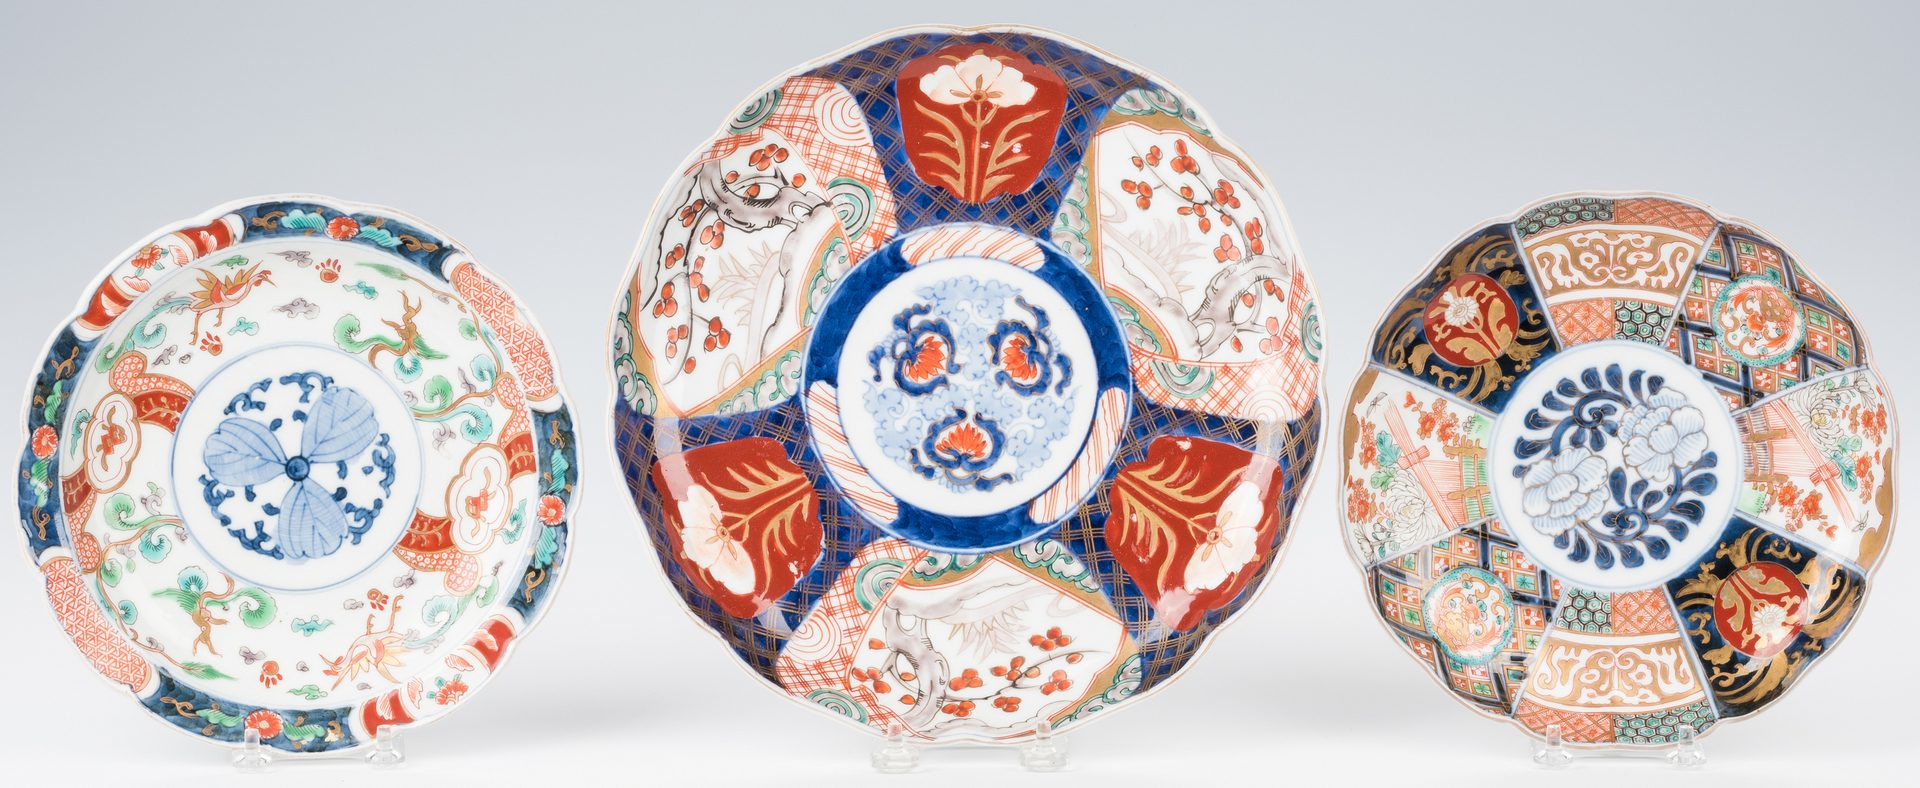 Lot 361: Group of 25 Japanese Imari or Arita Plates